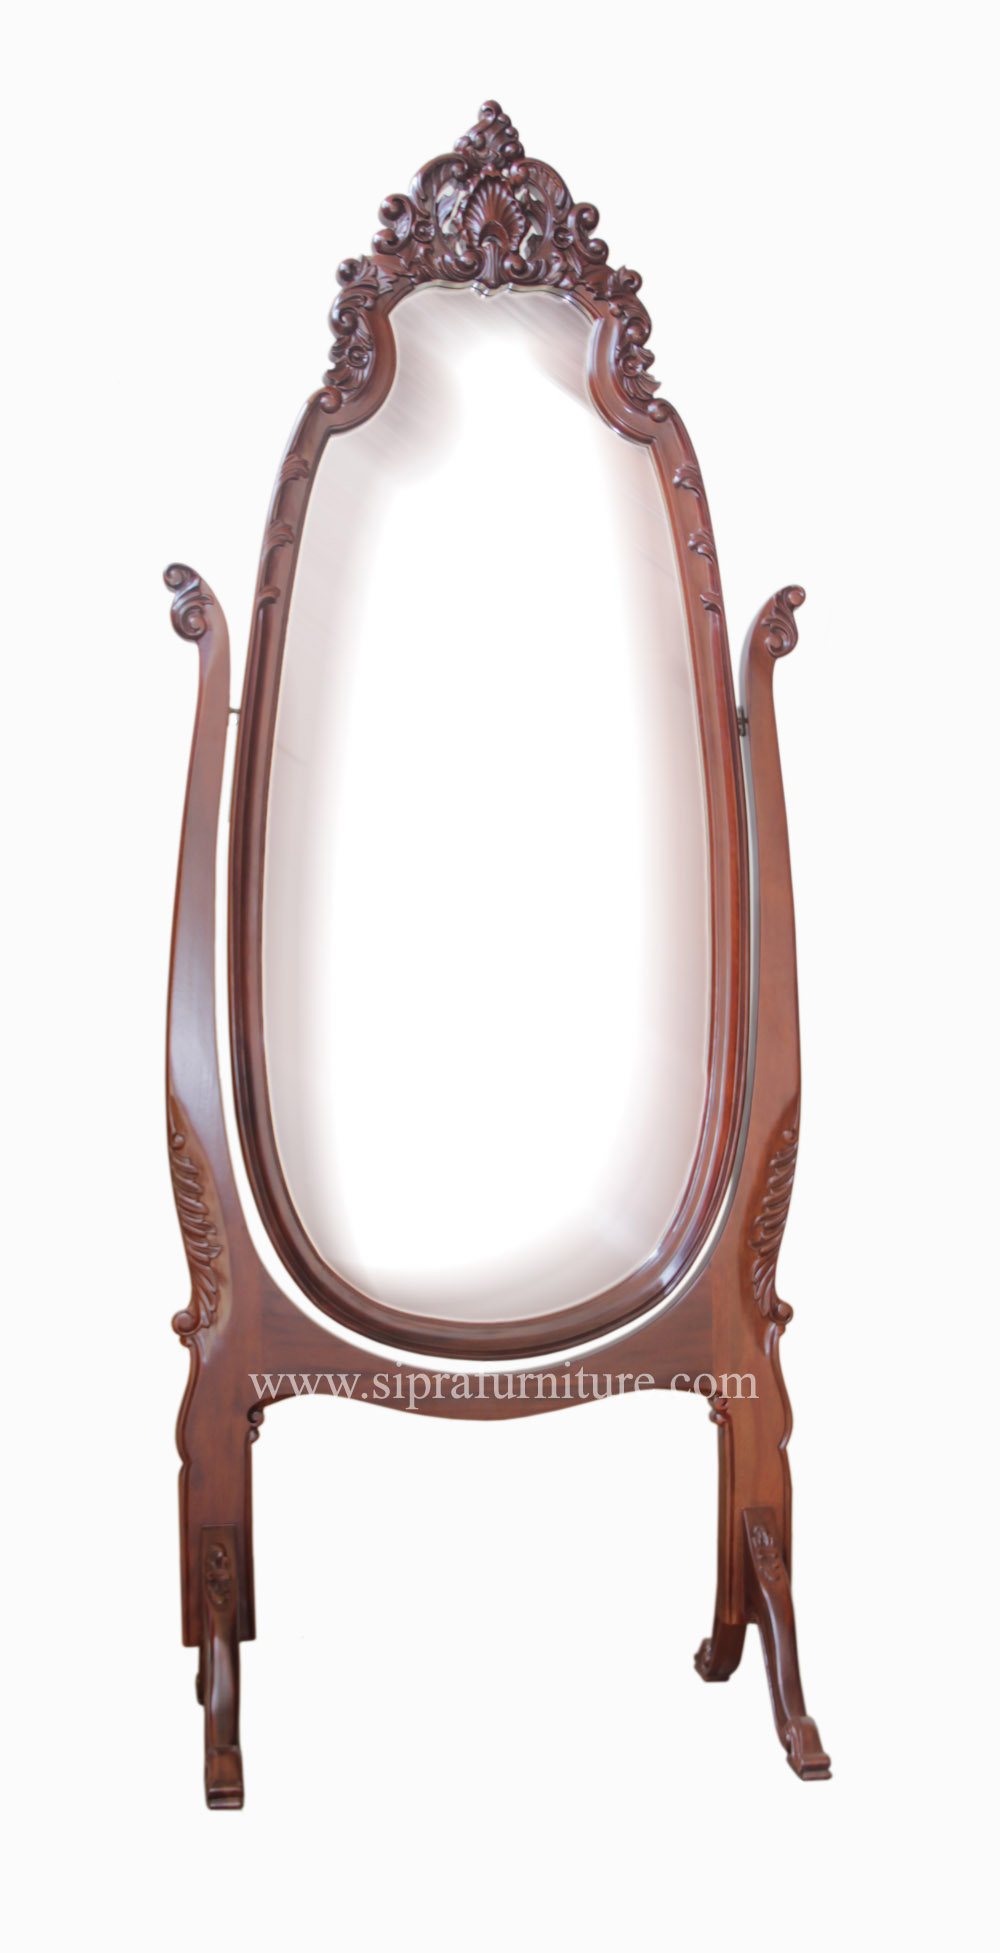 Sipra furniture gallery m rror for Miroir 130 x 80